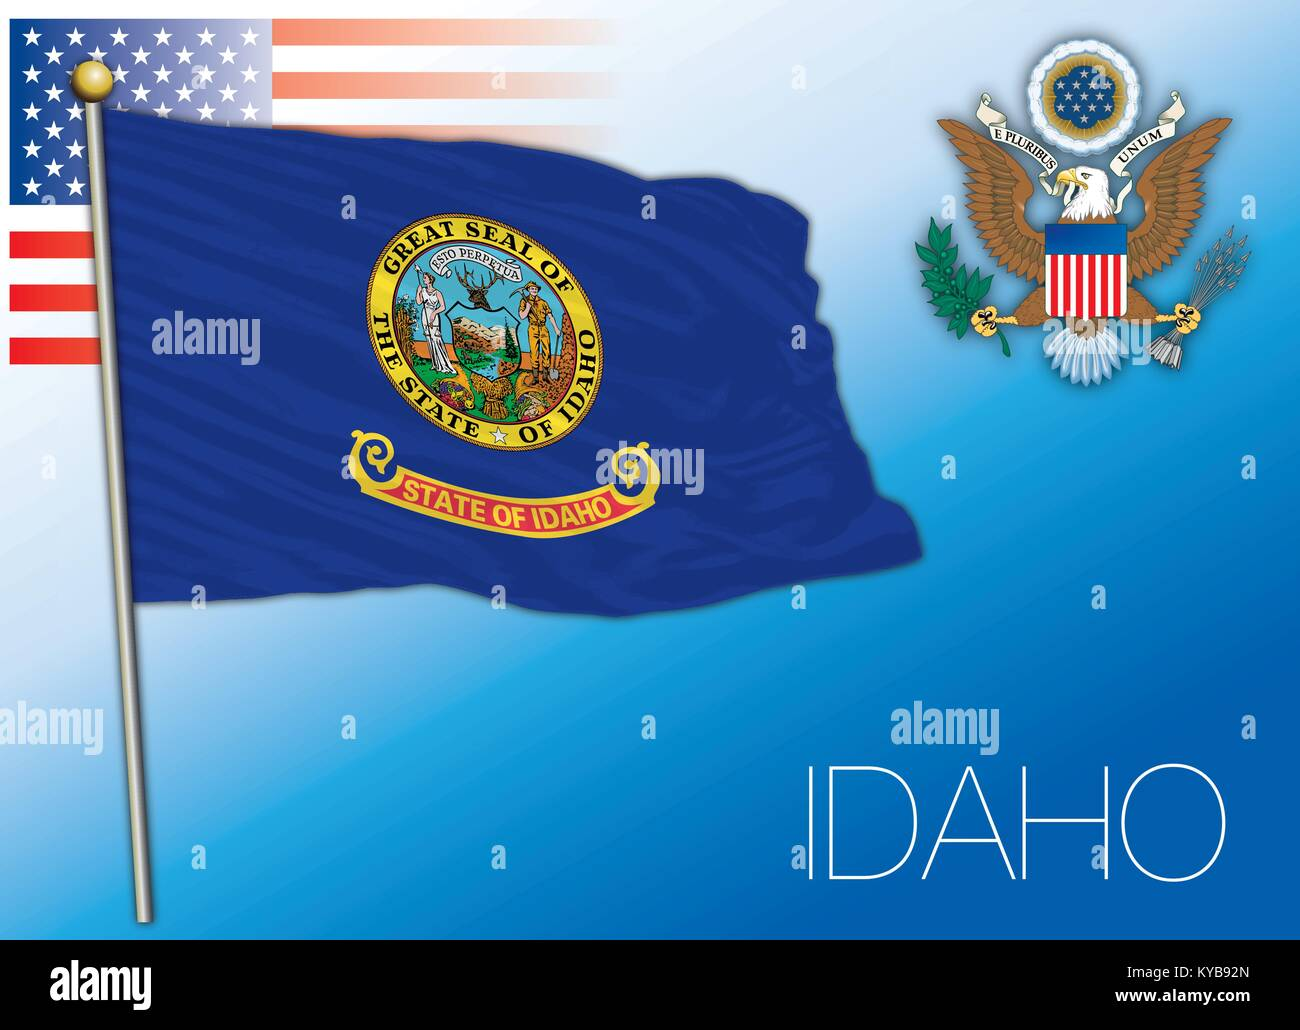 Idaho federal state flag, United States - Stock Vector